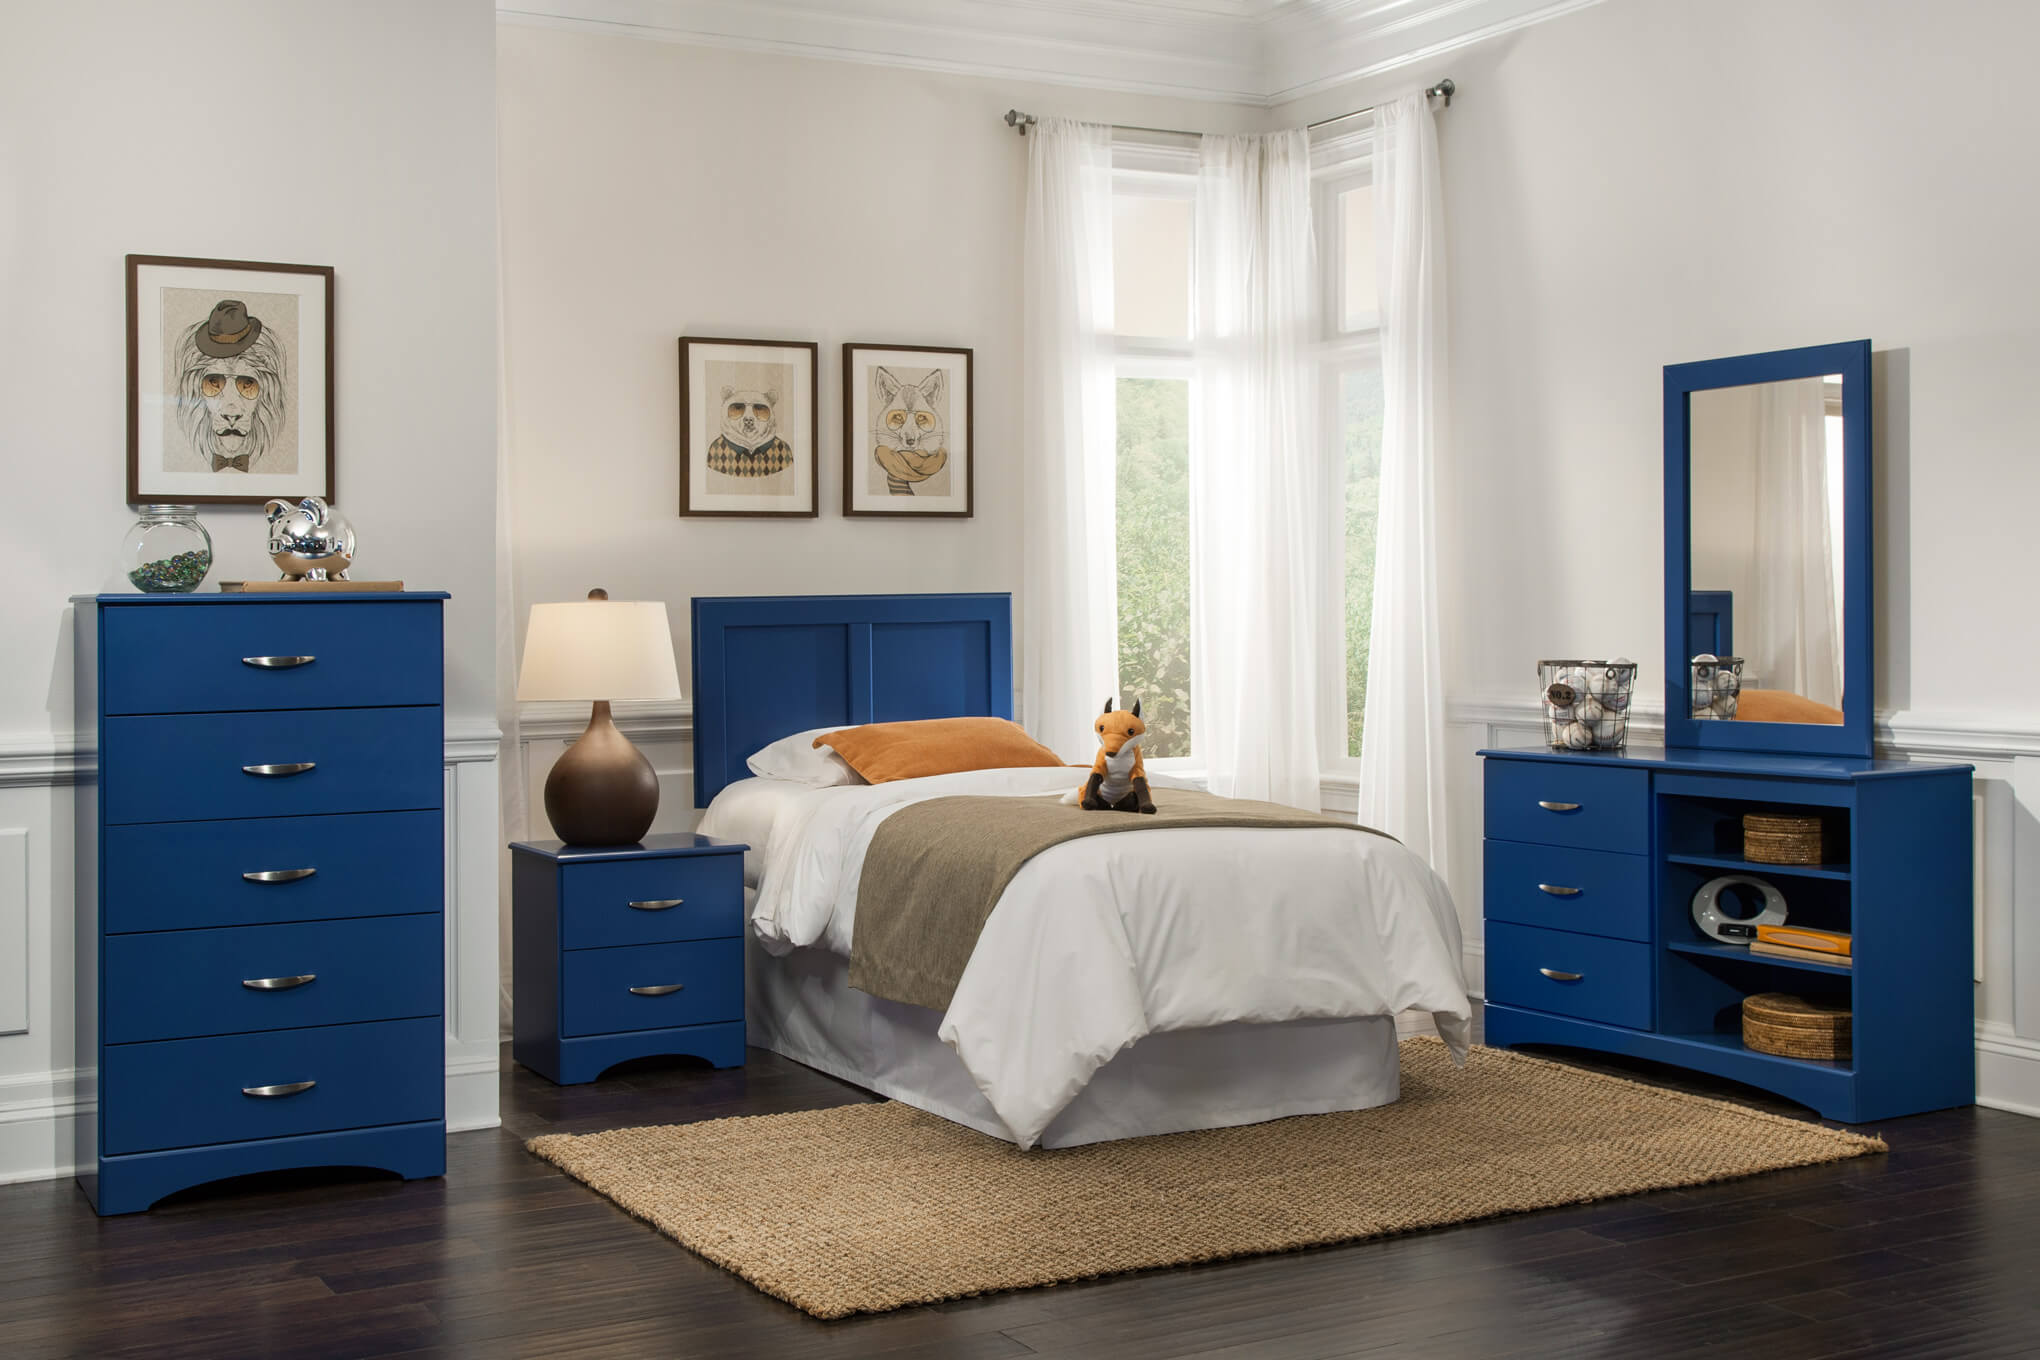 https://furnitureurban.com/wp-content/uploads/2014/07/KIT179_Royal_Blue.jpg